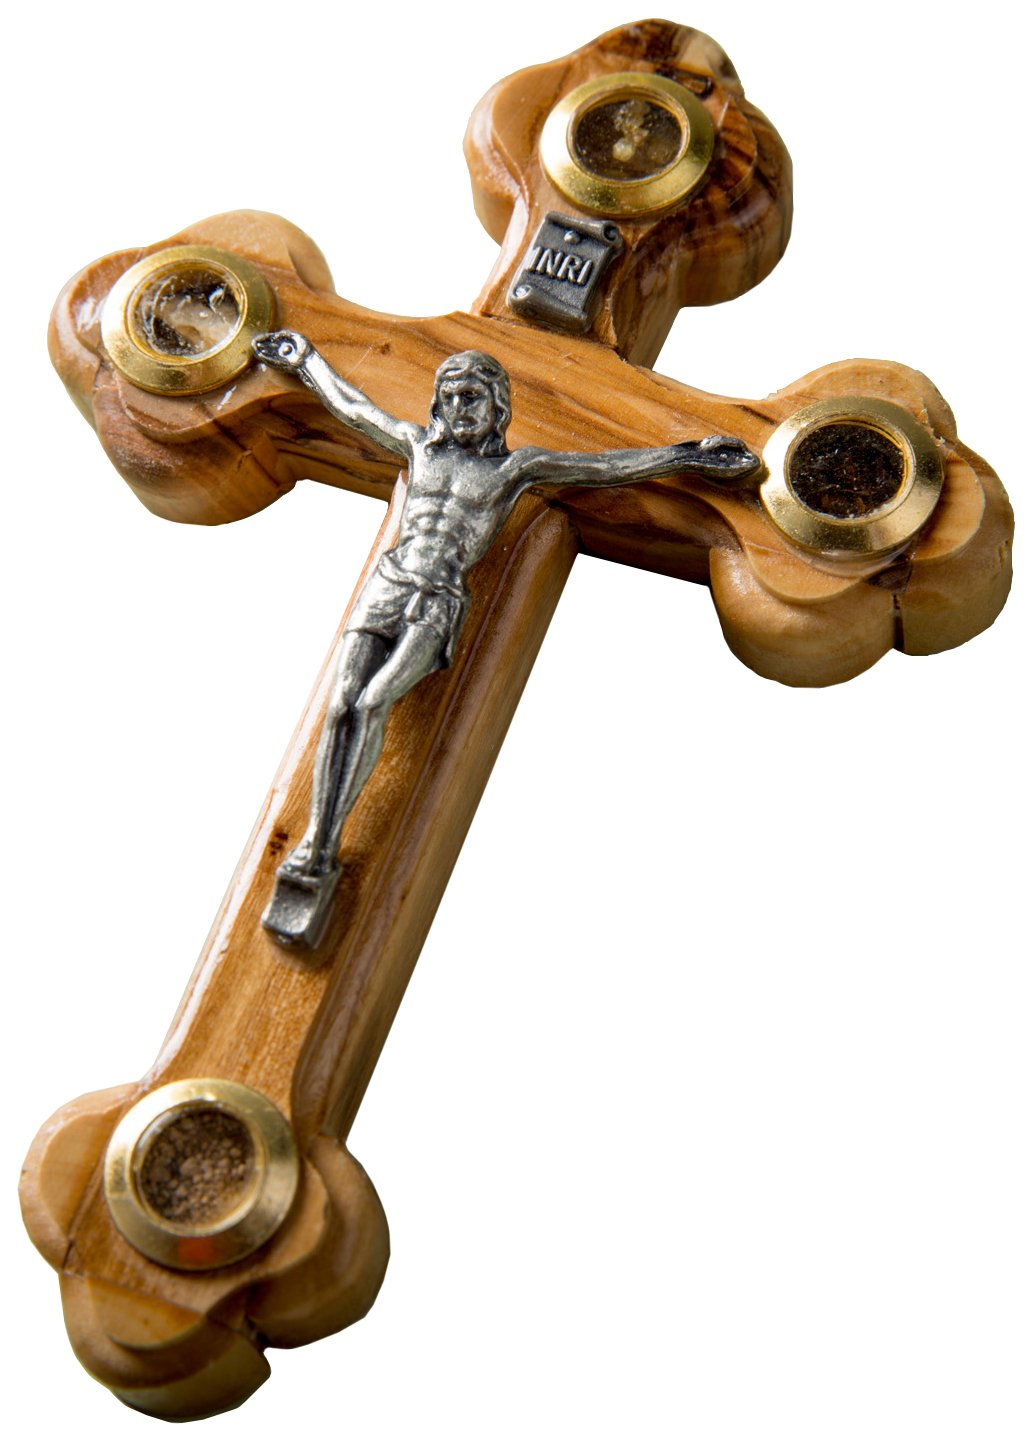 EARTHWOOD FINE WOOD PRODUCTS CC-08 Olive Wood Orthodox Wall Cross with Windows Brown